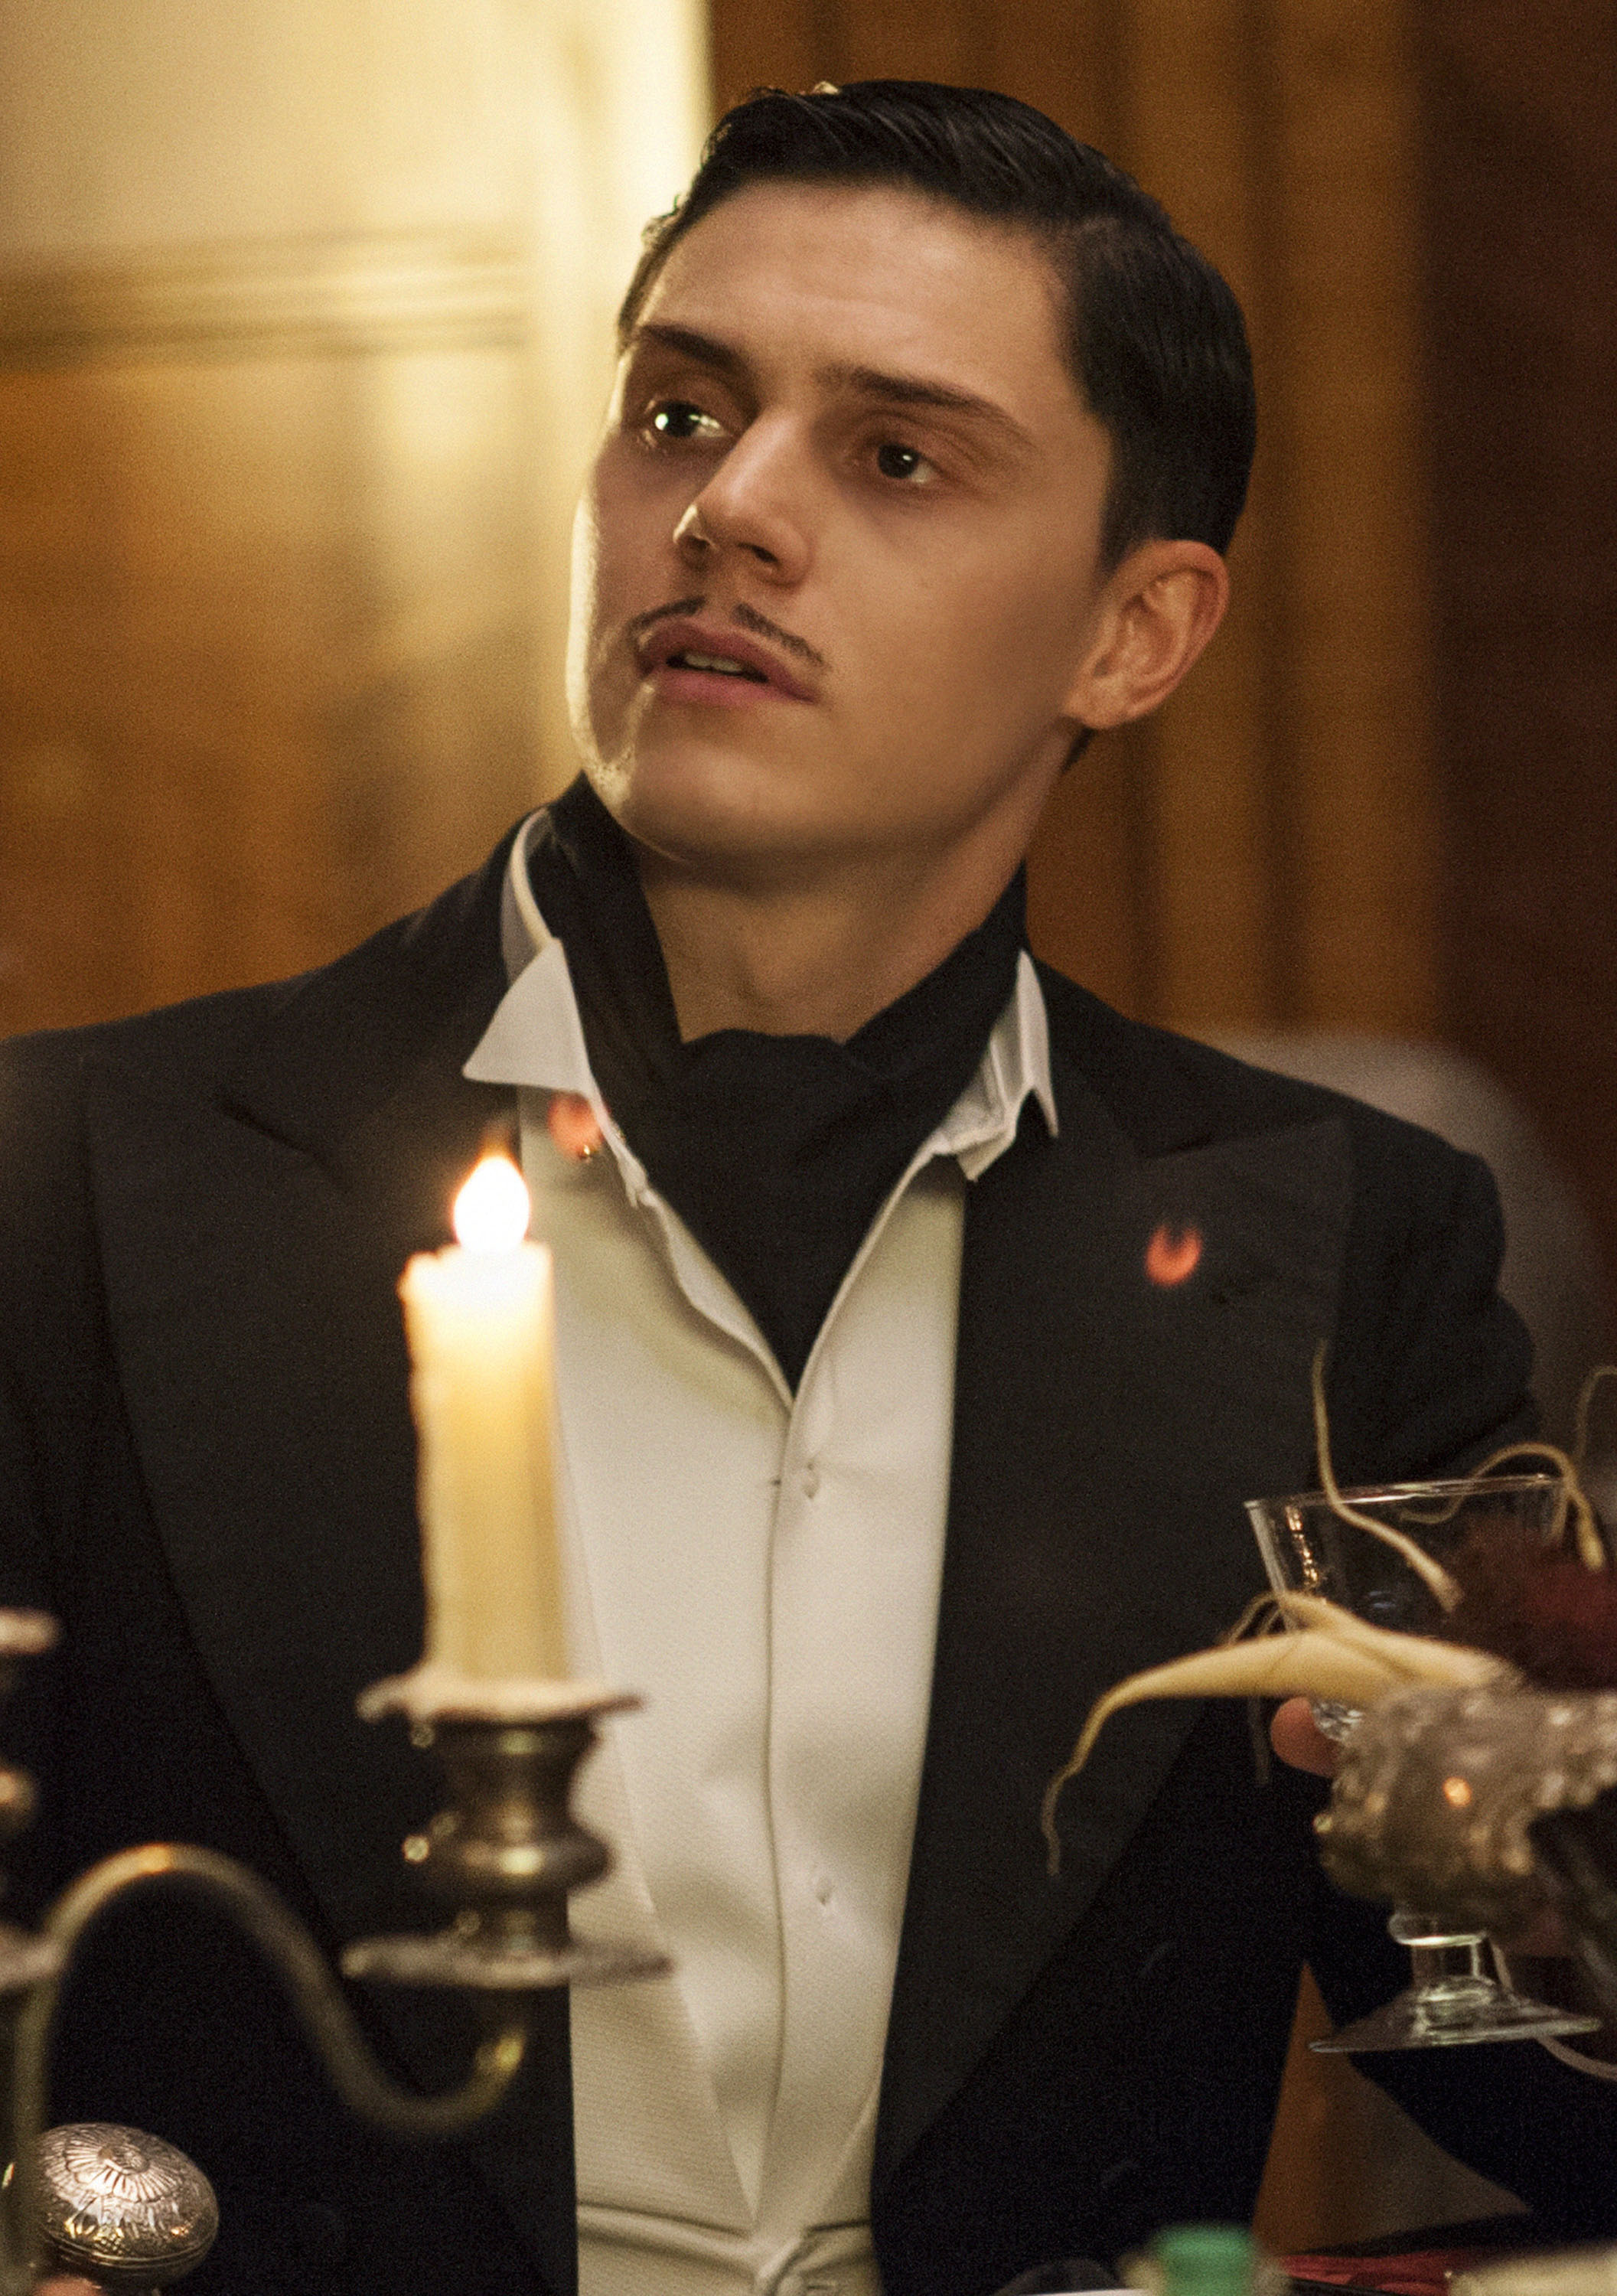 http://res.cloudinary.com/drhogimde/image/upload/v1581761558/american-horror-story-hotel-evan-peters-04.jpg